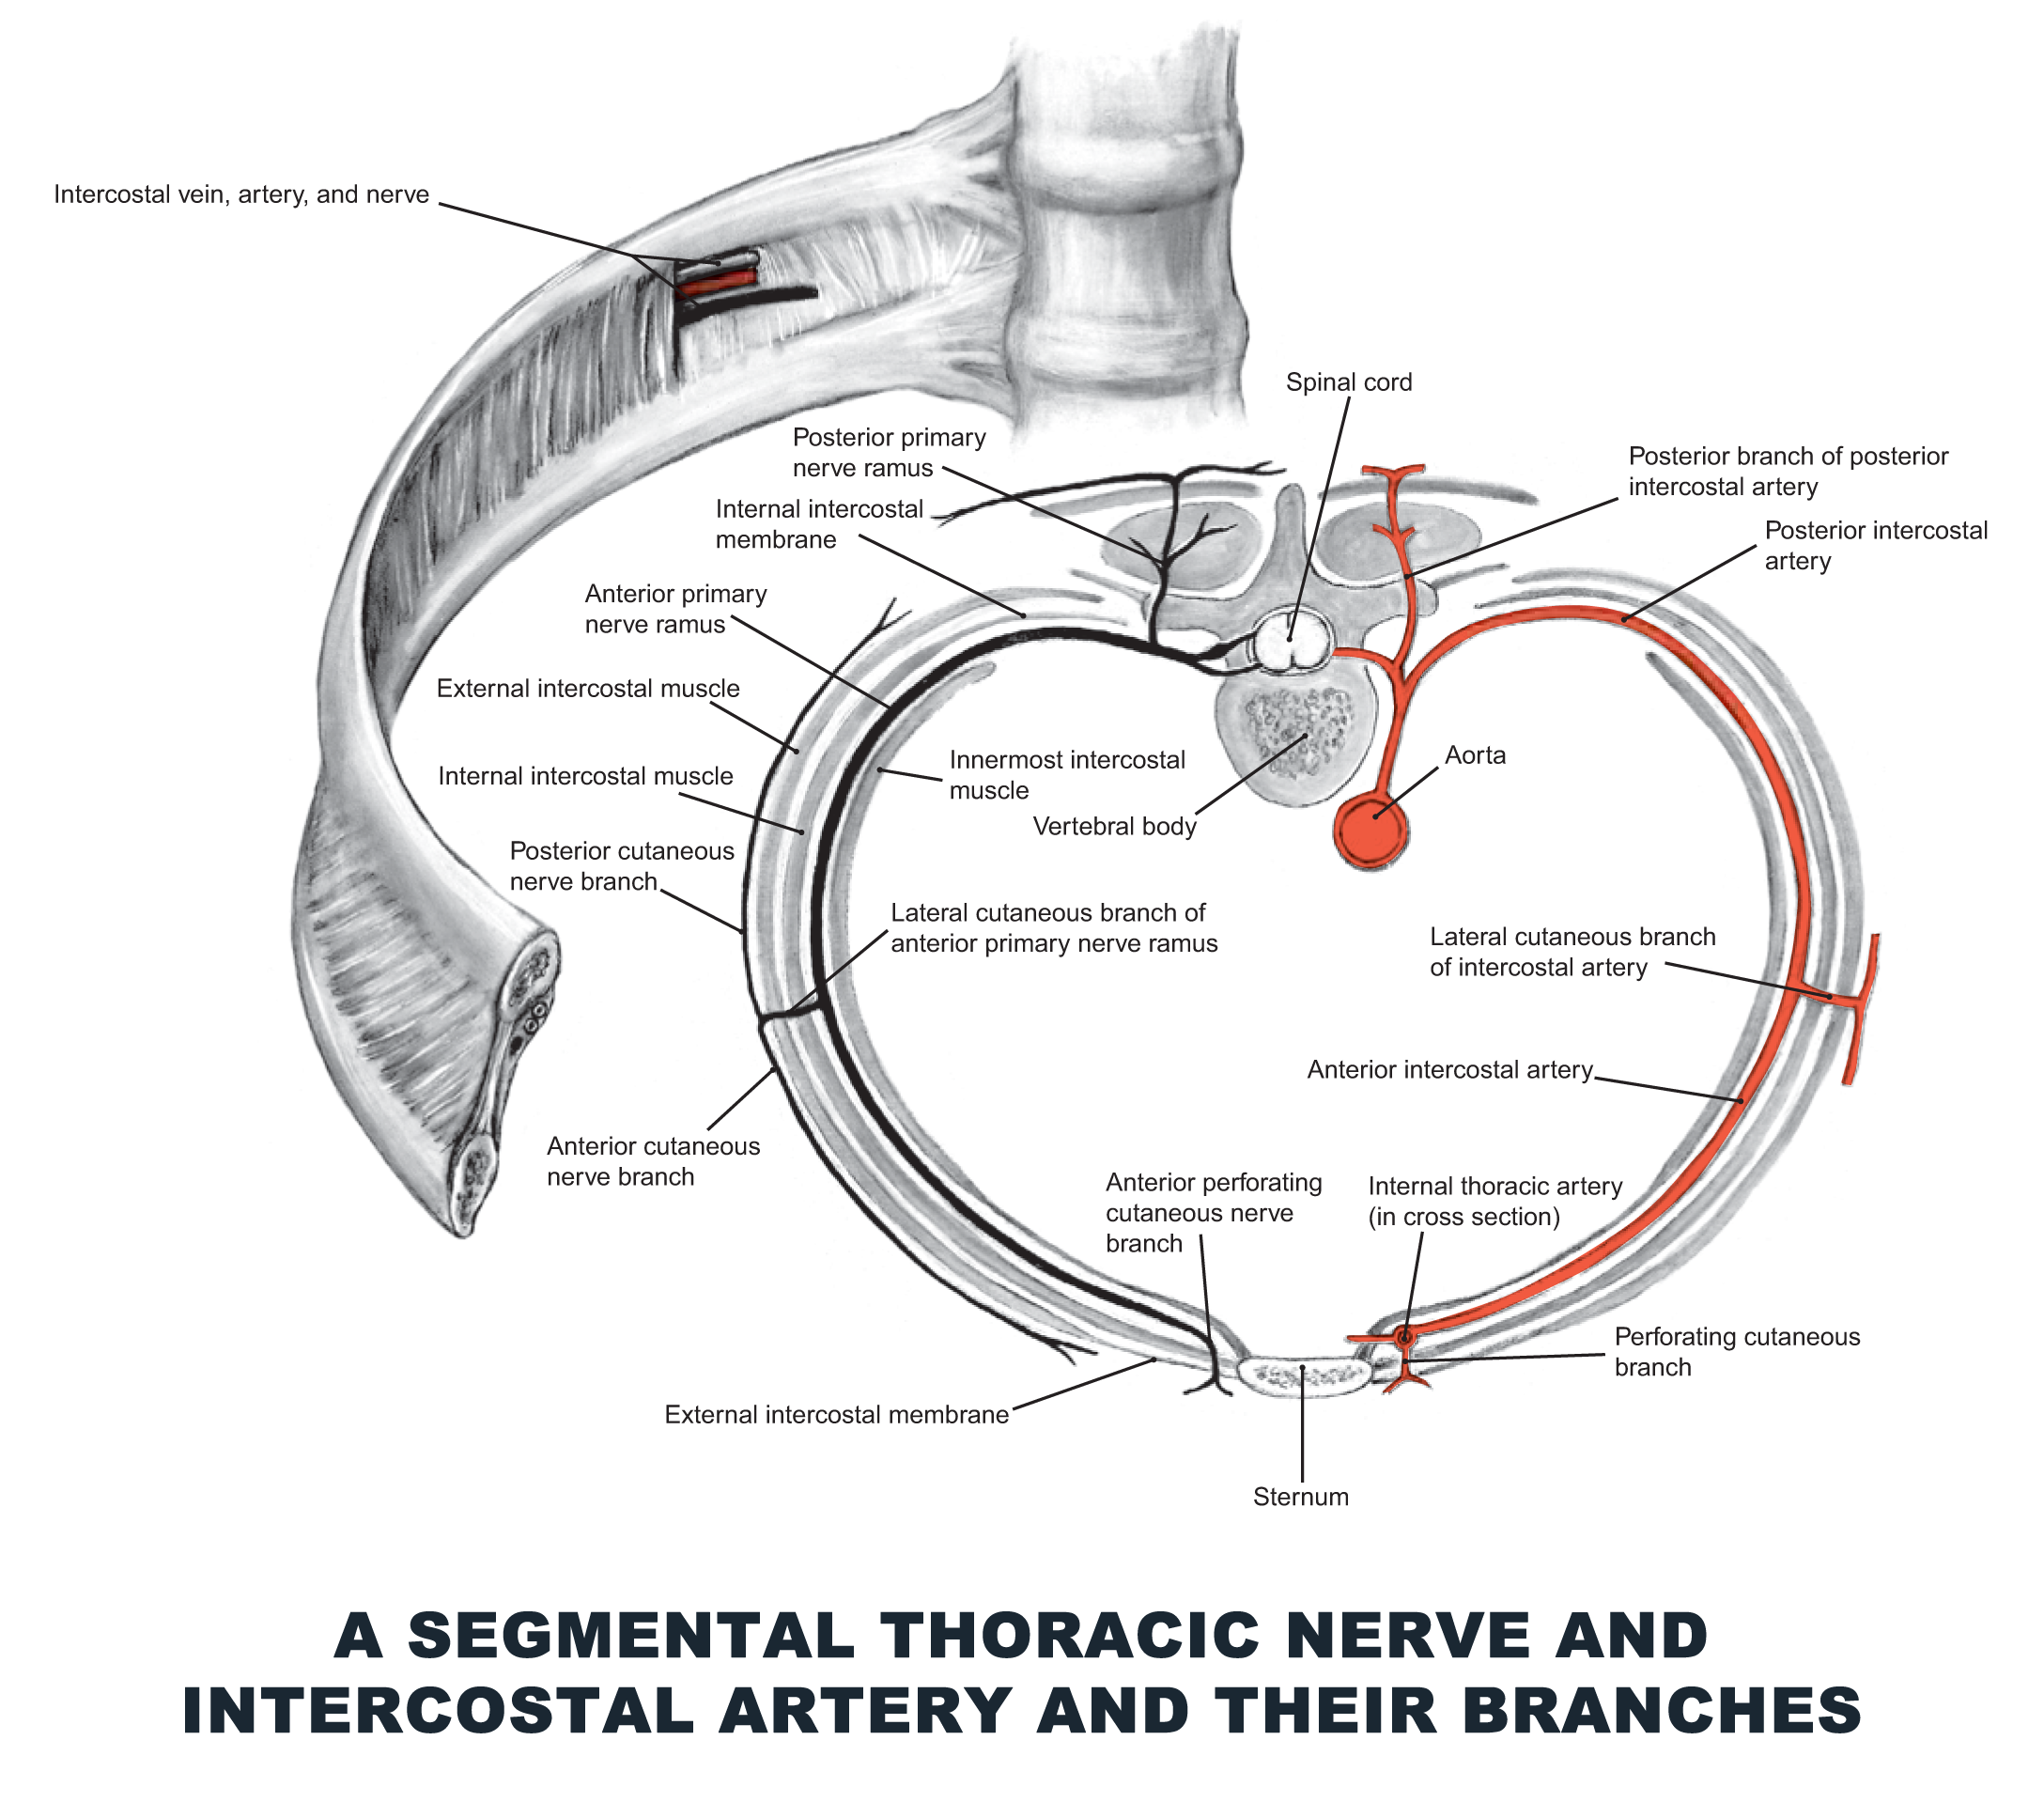 A Segmental Thoracic Nerve And Intercostal Artery And Their Branches